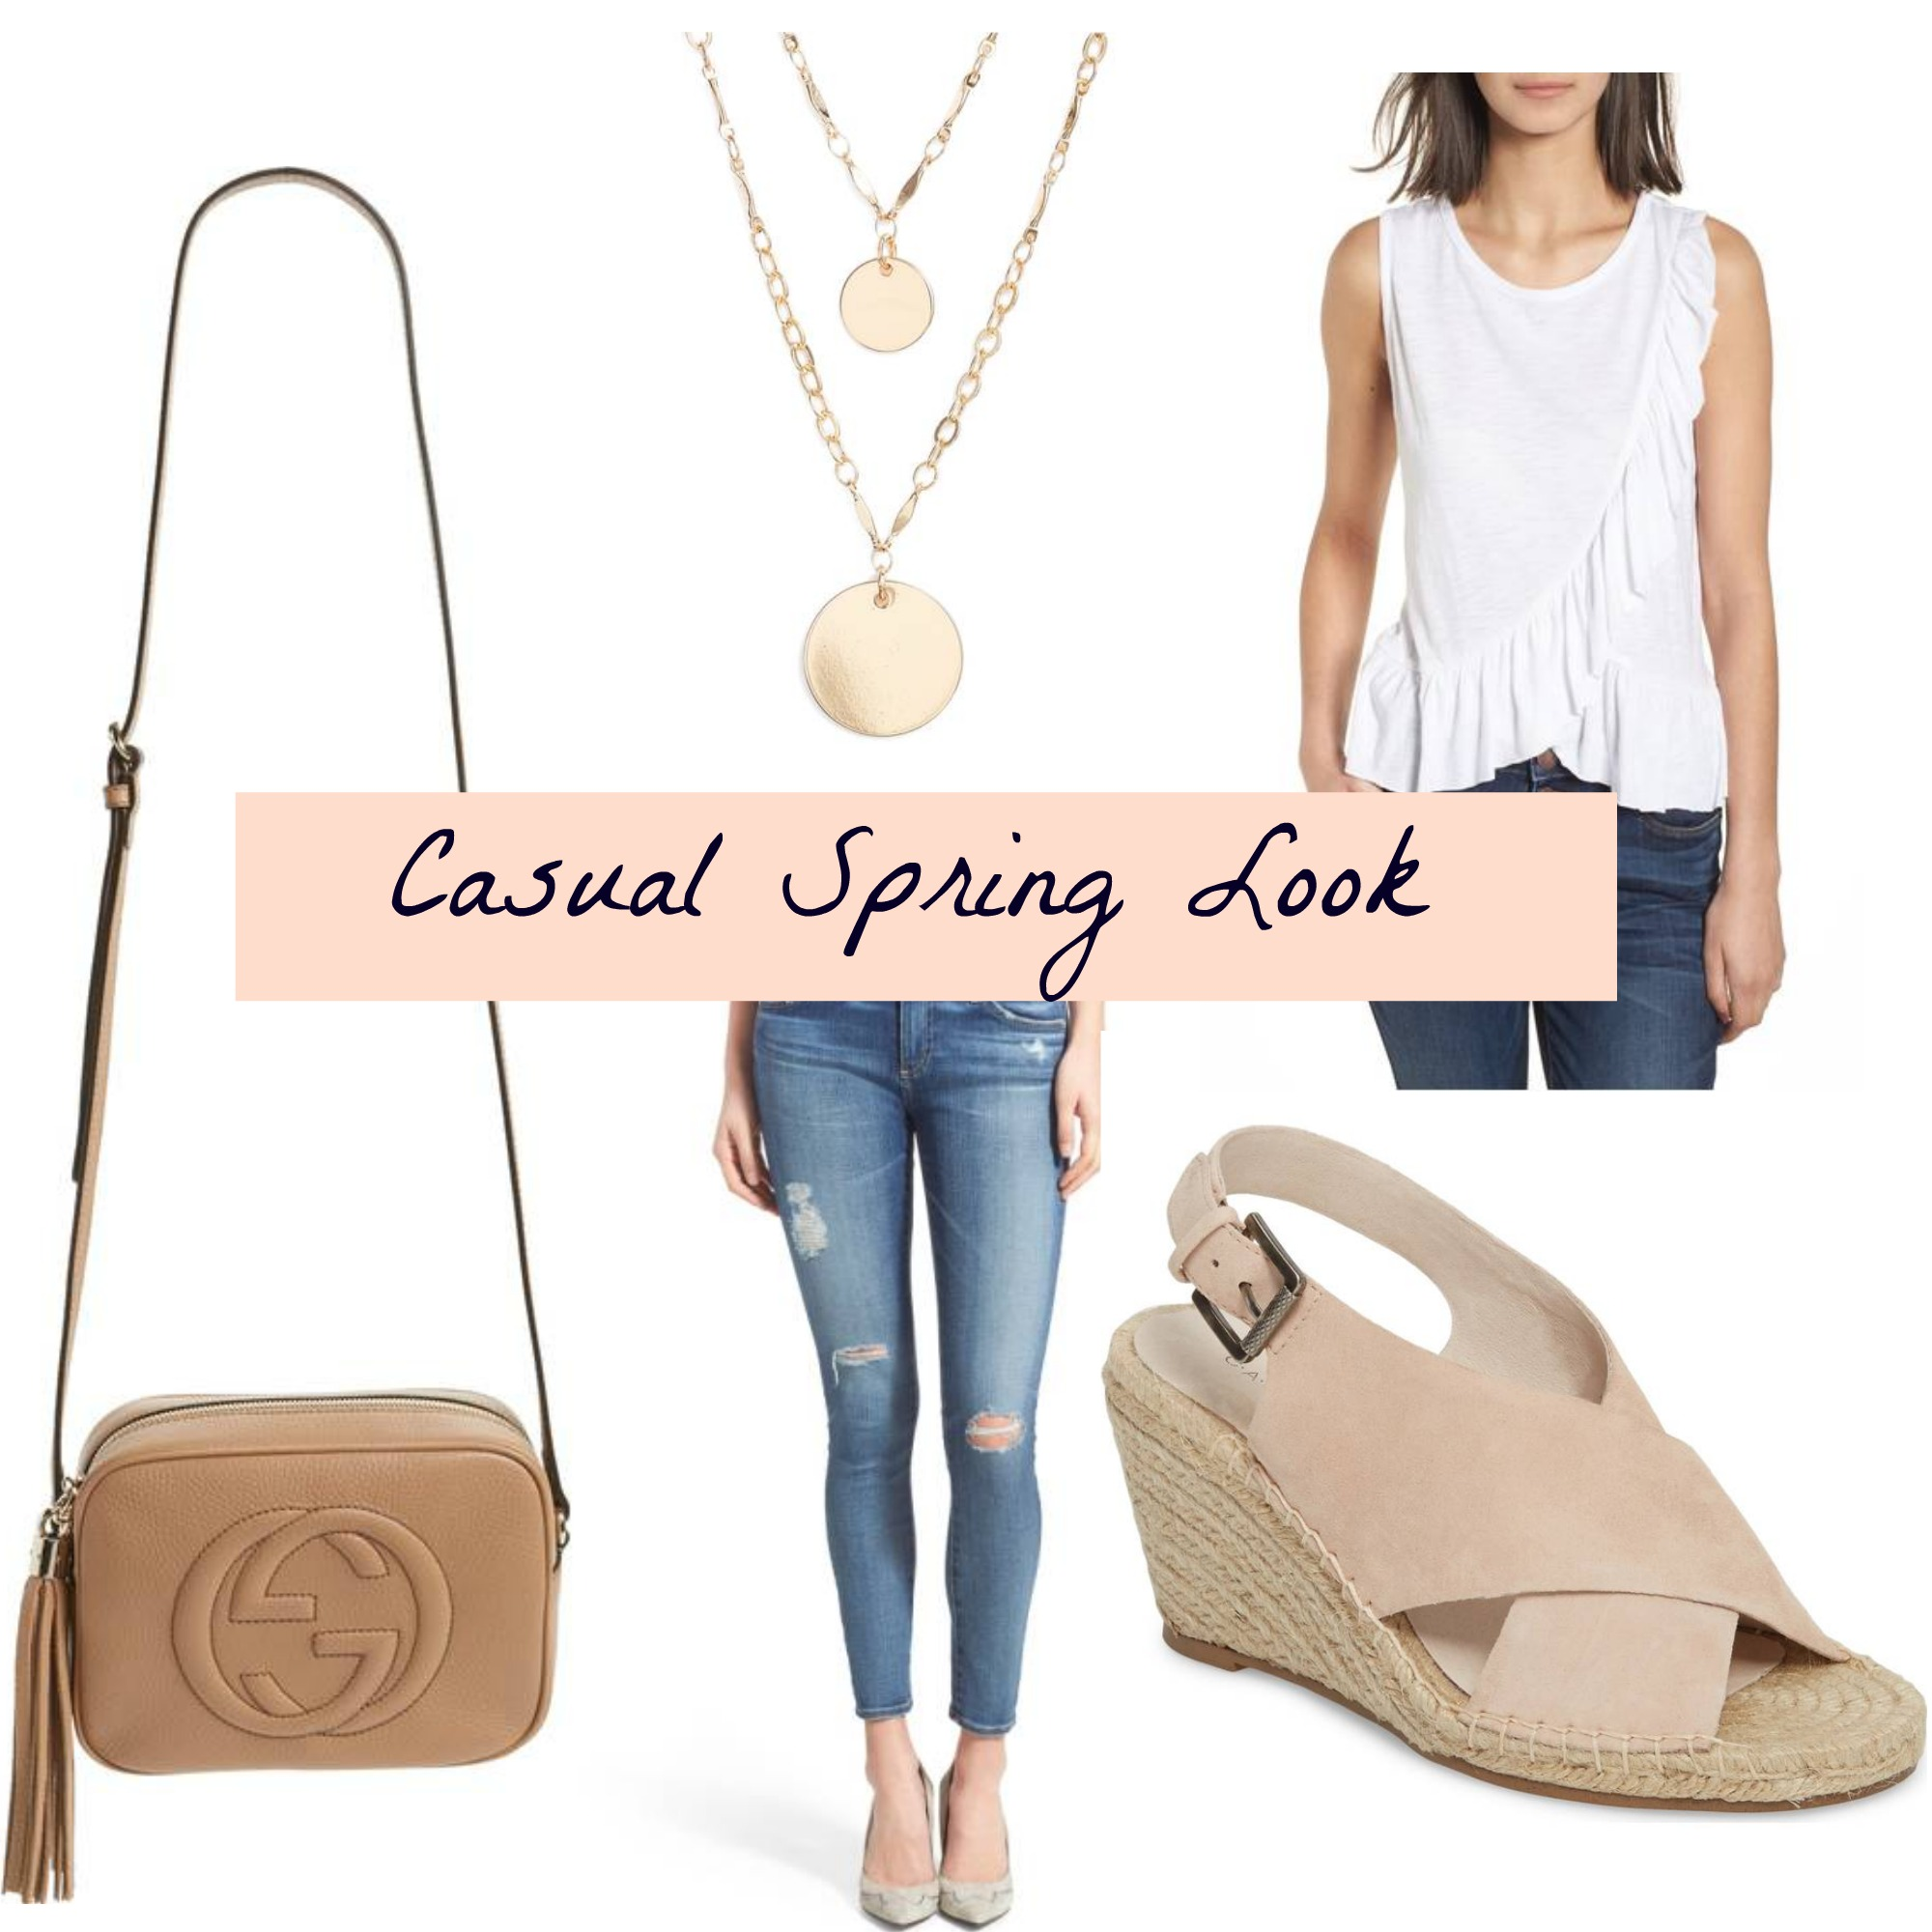 9f3e148dbe8 Must Haves Monday- A Casual Spring Look - More Than A Fashion Blog